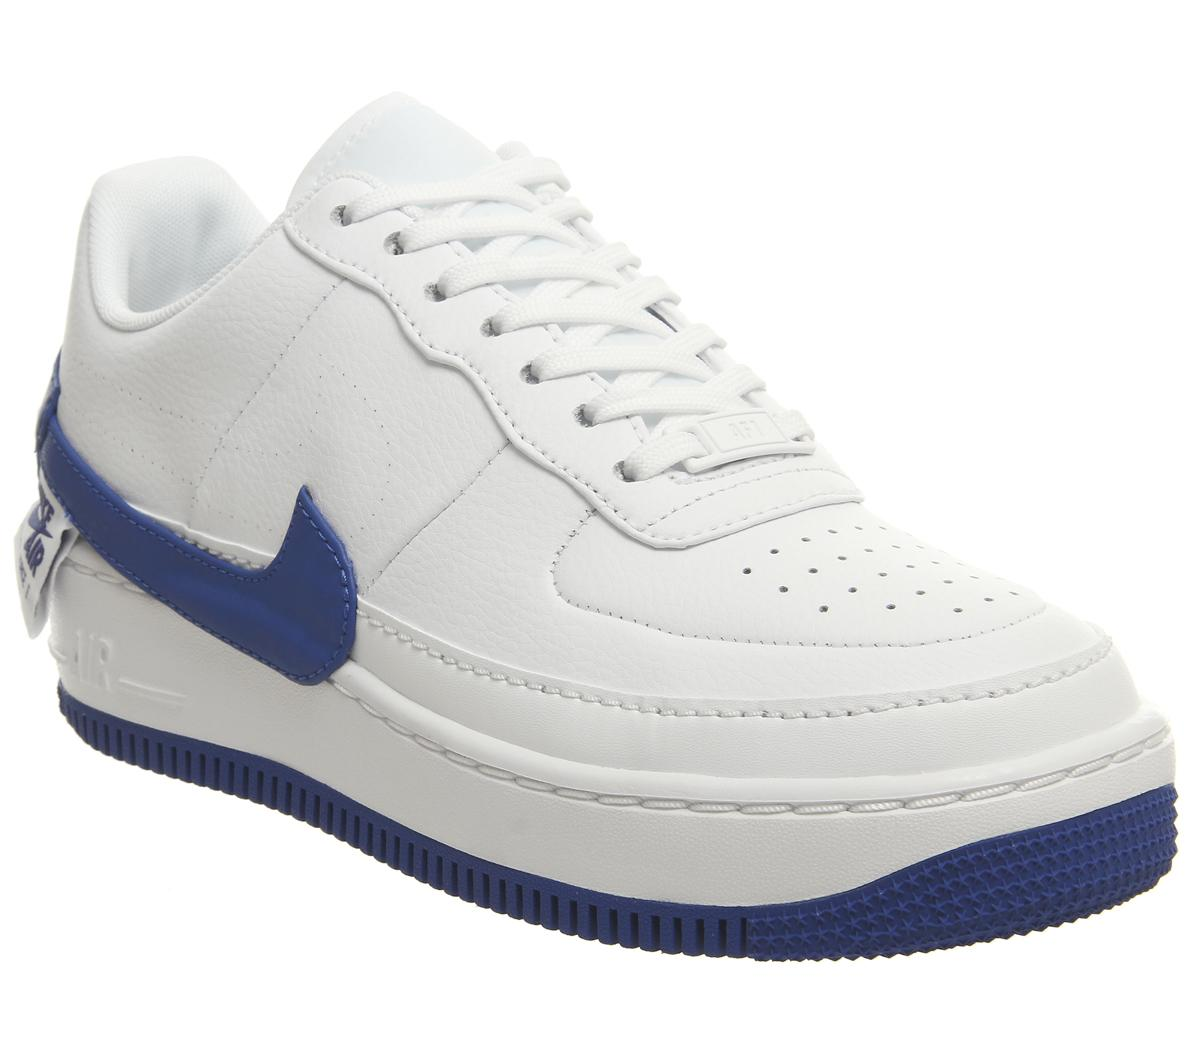 Trascendencia ambición italiano  Nike Air Force 1 Jester Trainers White Blue - Hers trainers